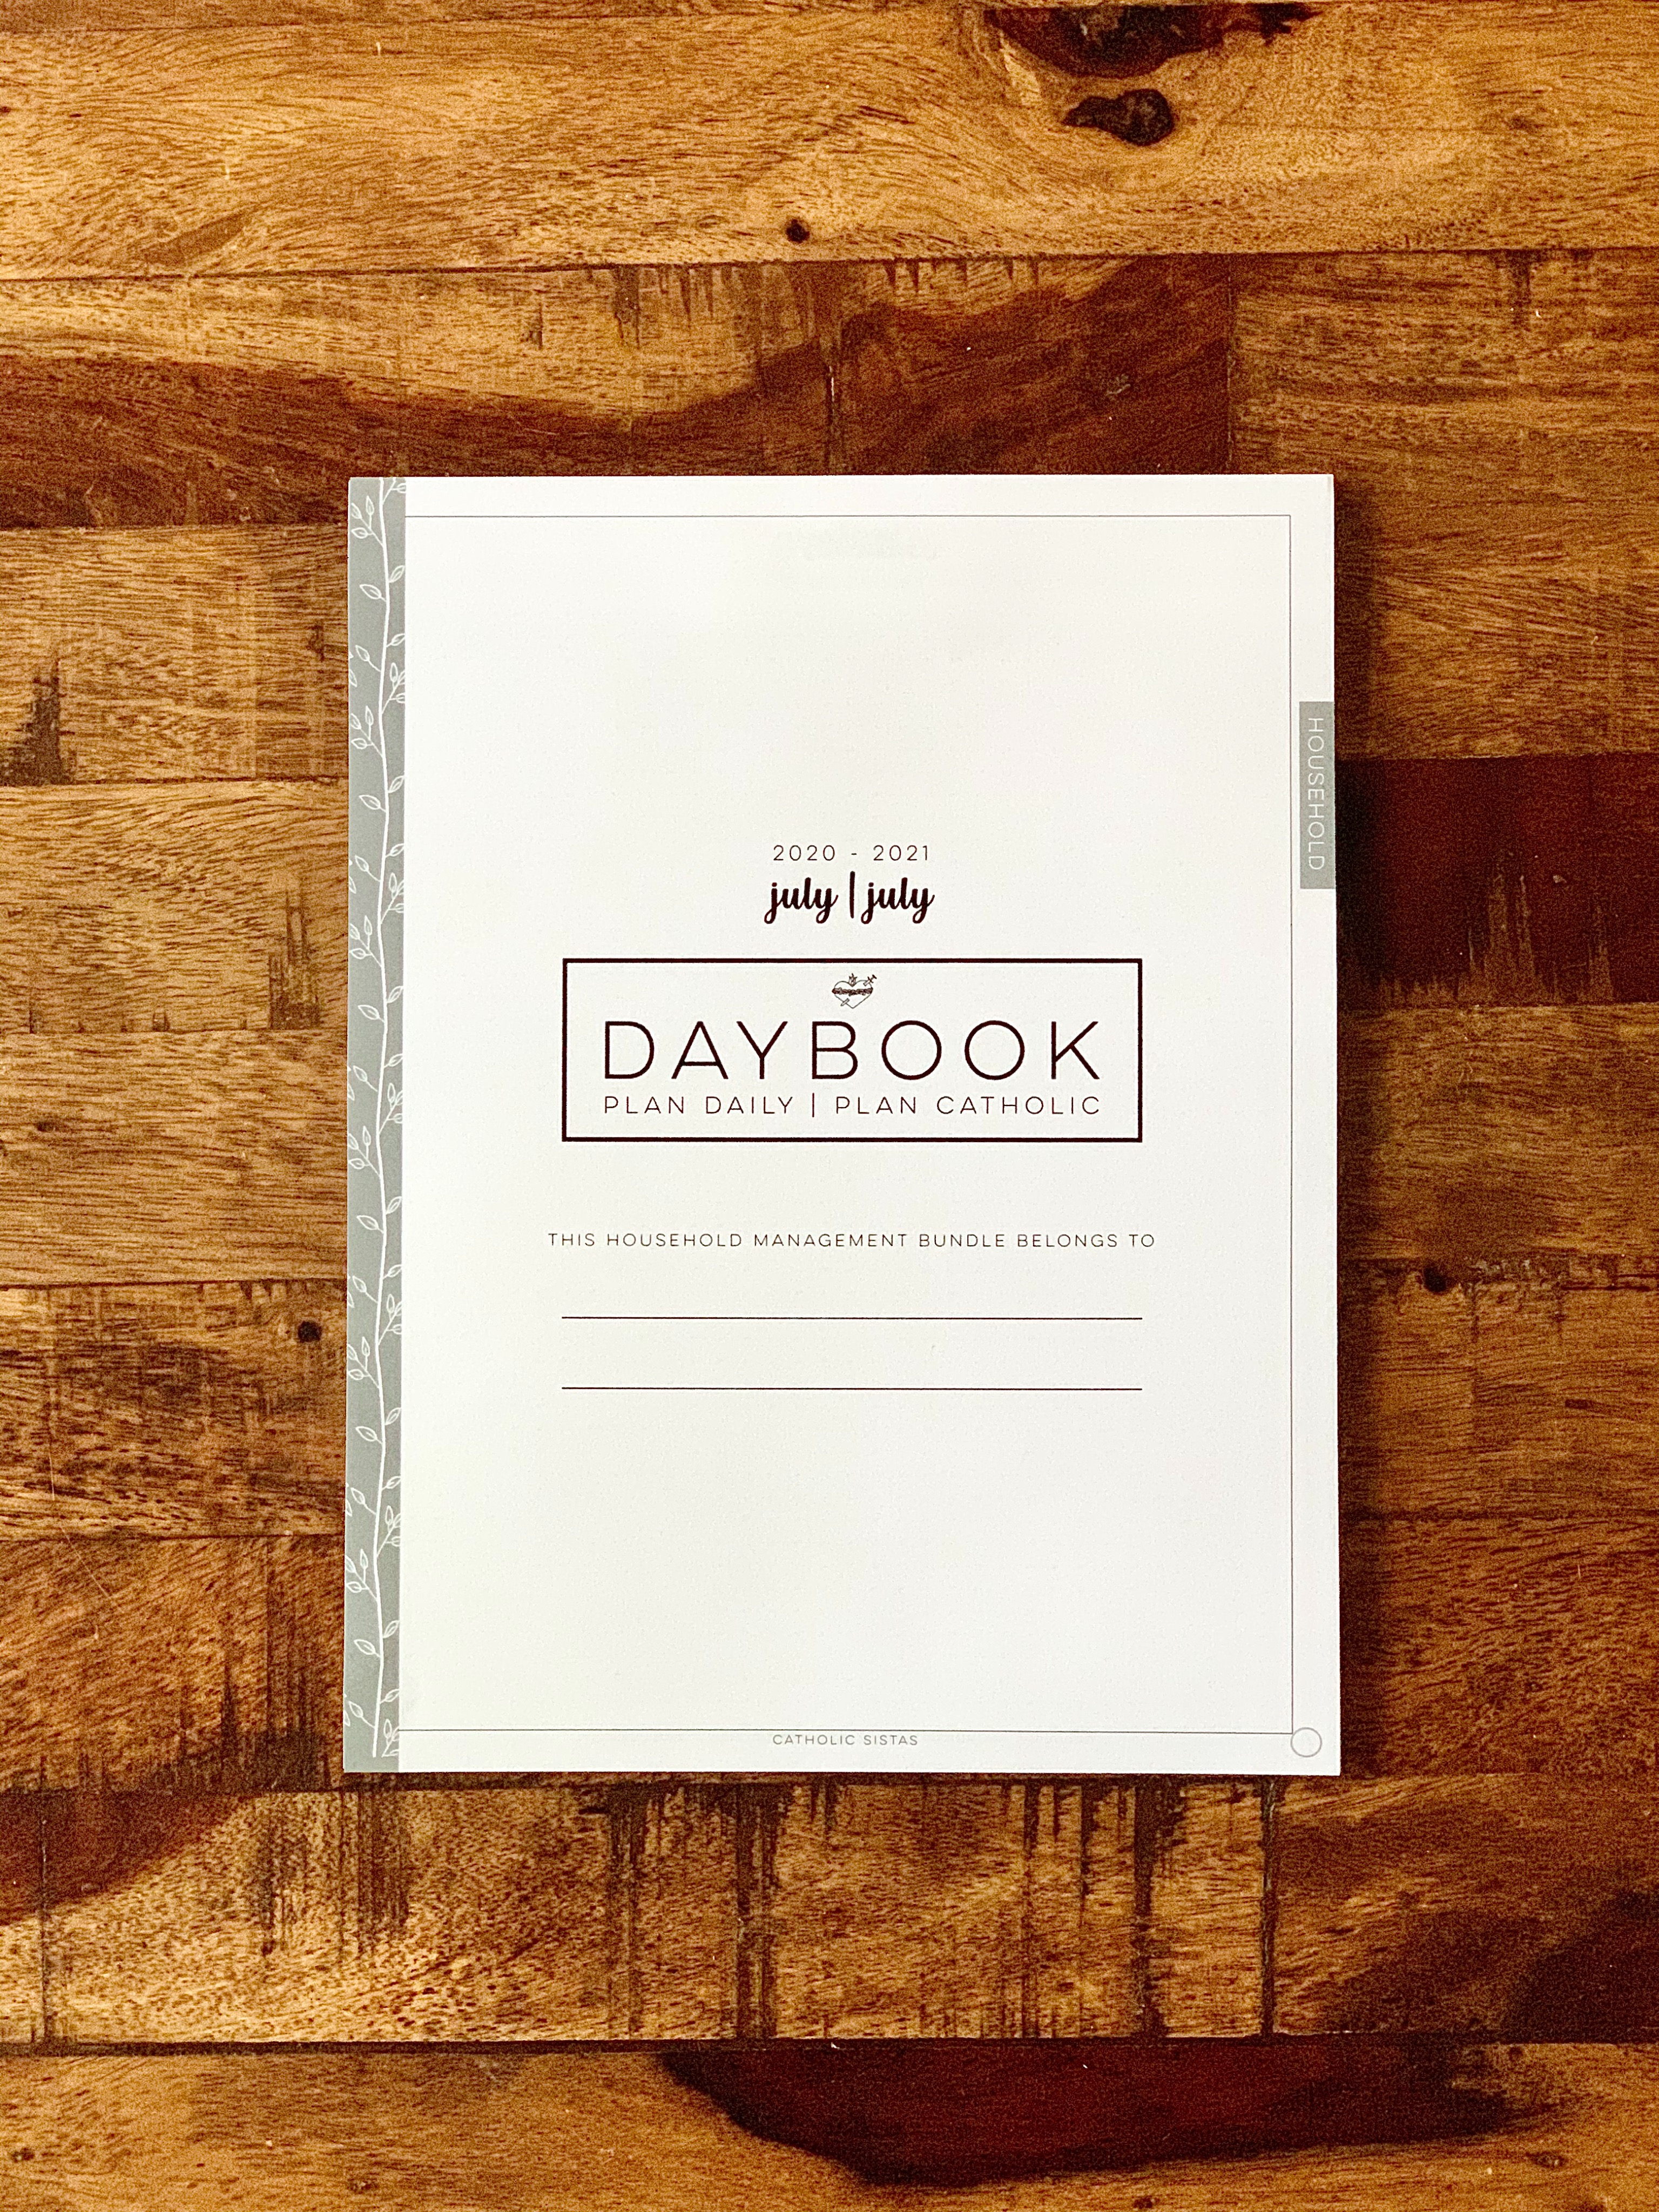 HARD COPY - DAYBOOK || Household Management